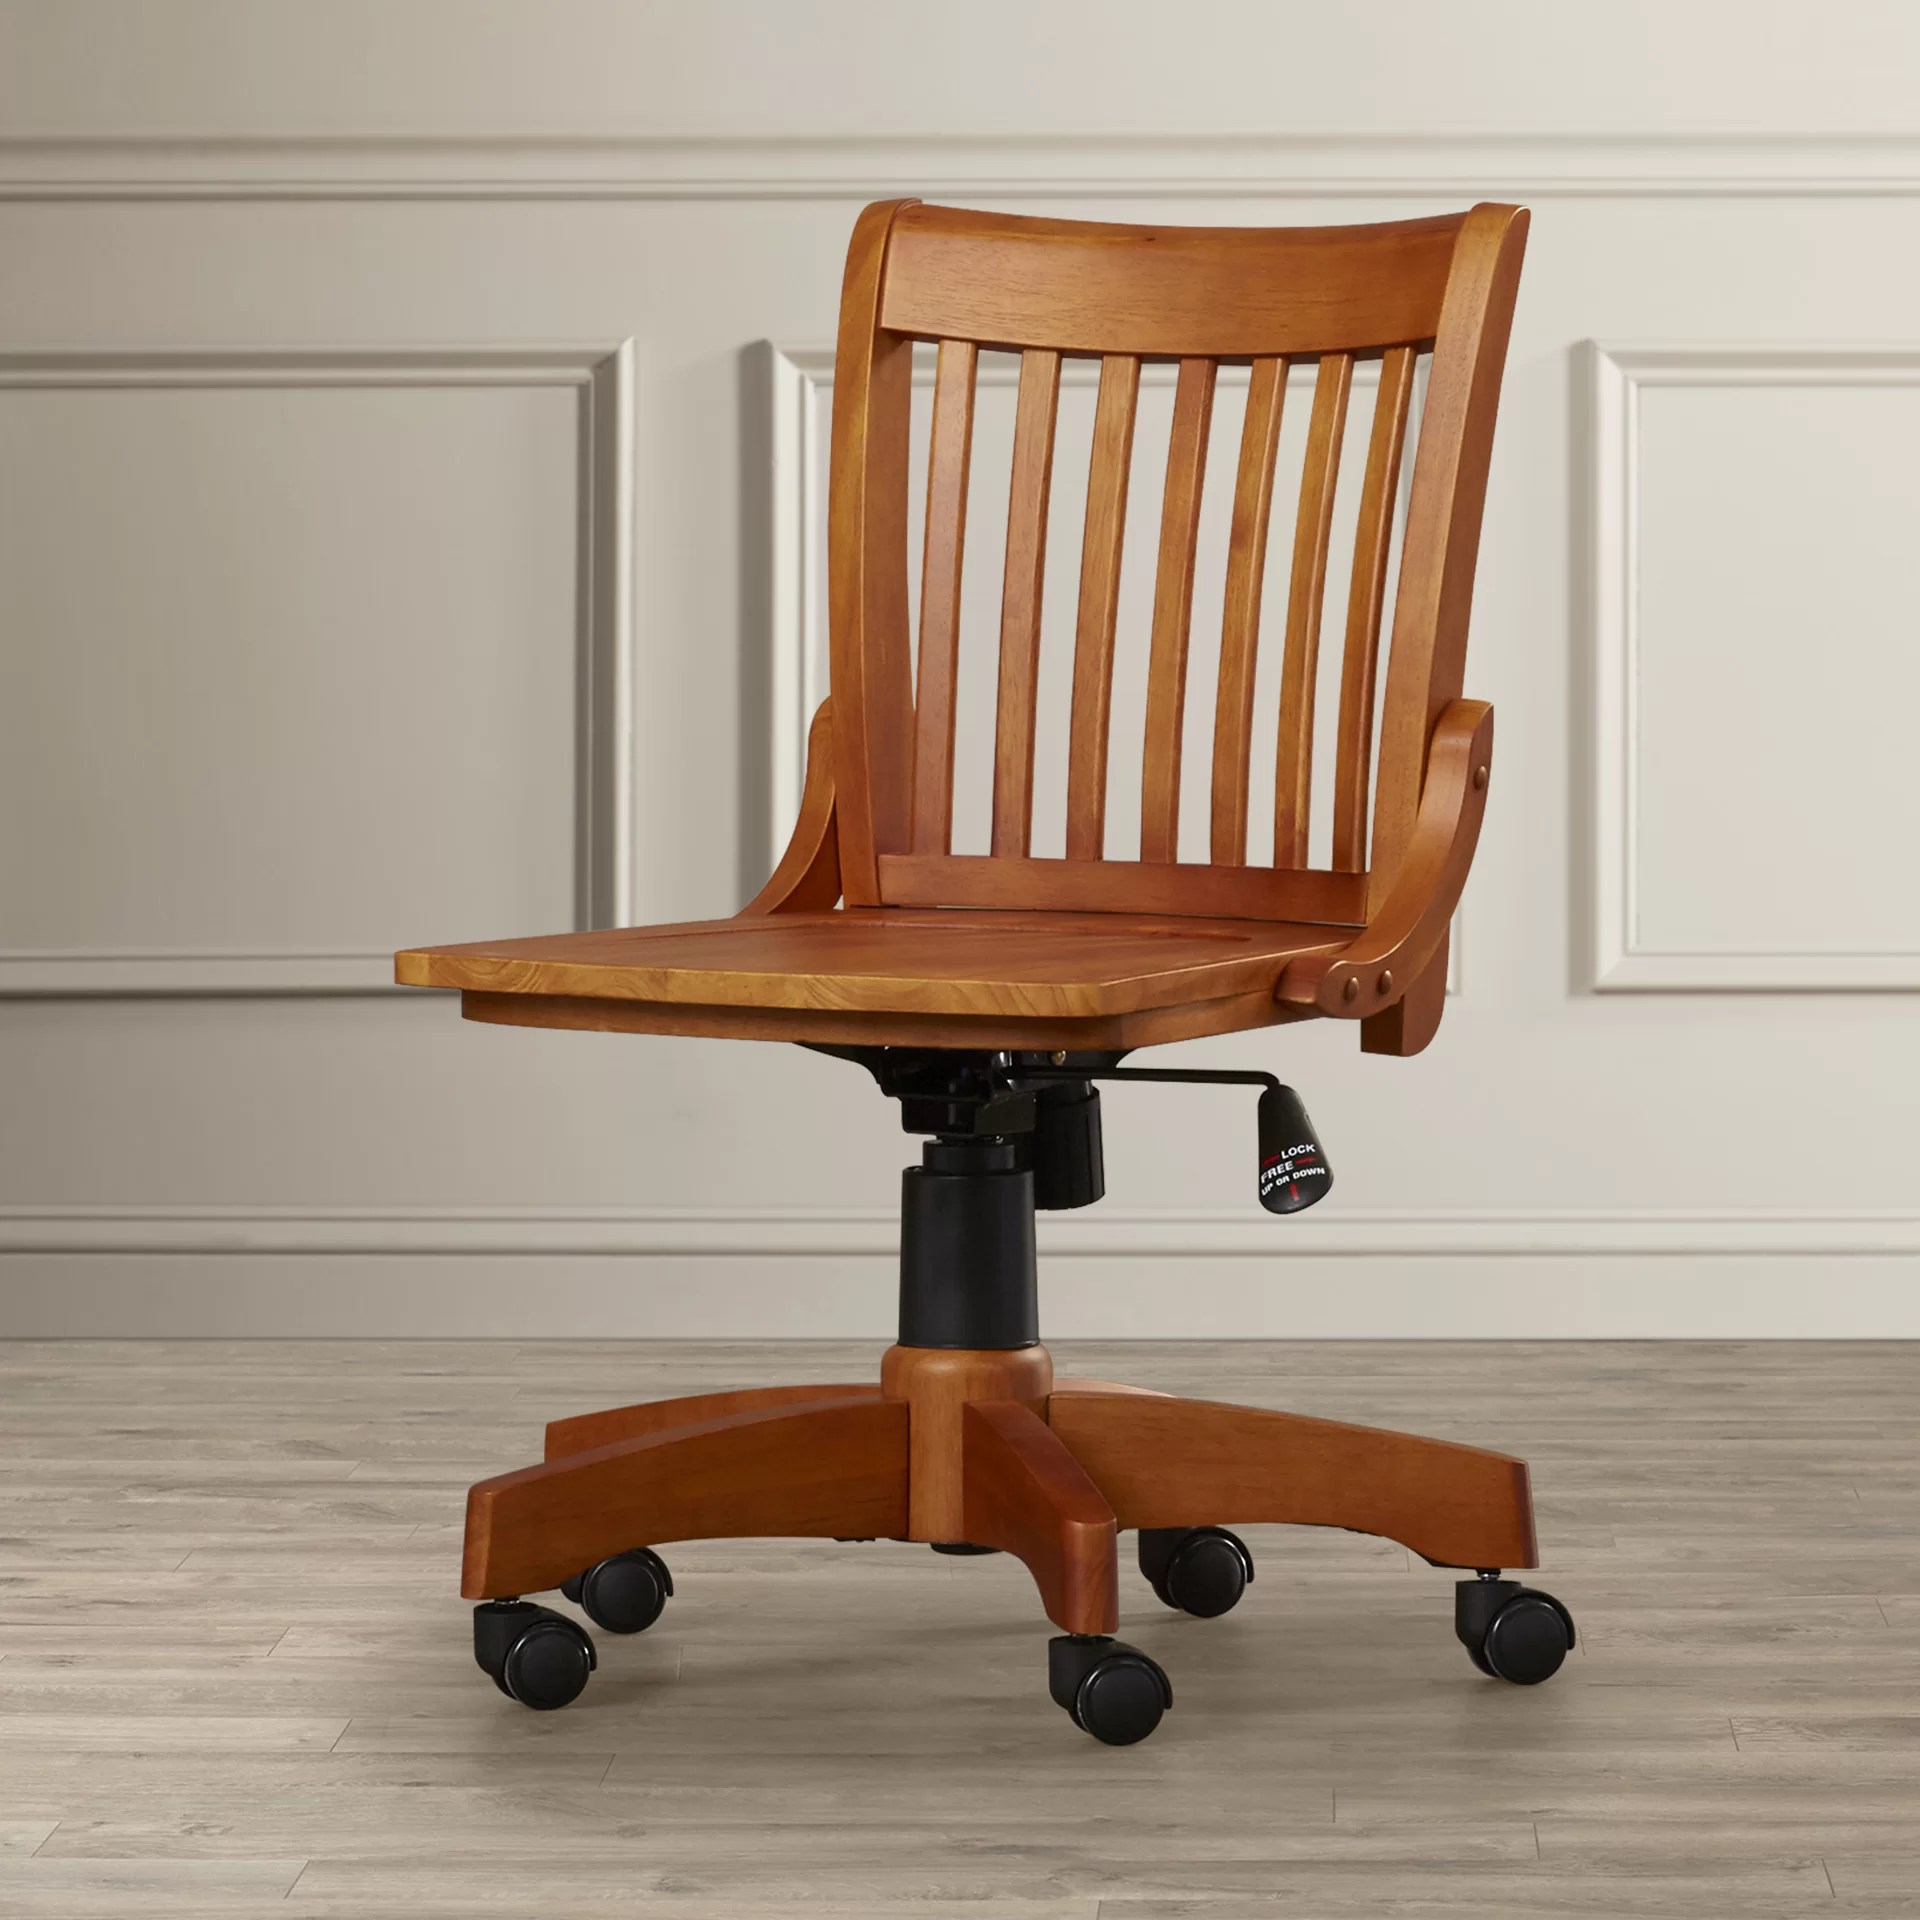 Wooden Bankers Chair Featherston Bankers Chair